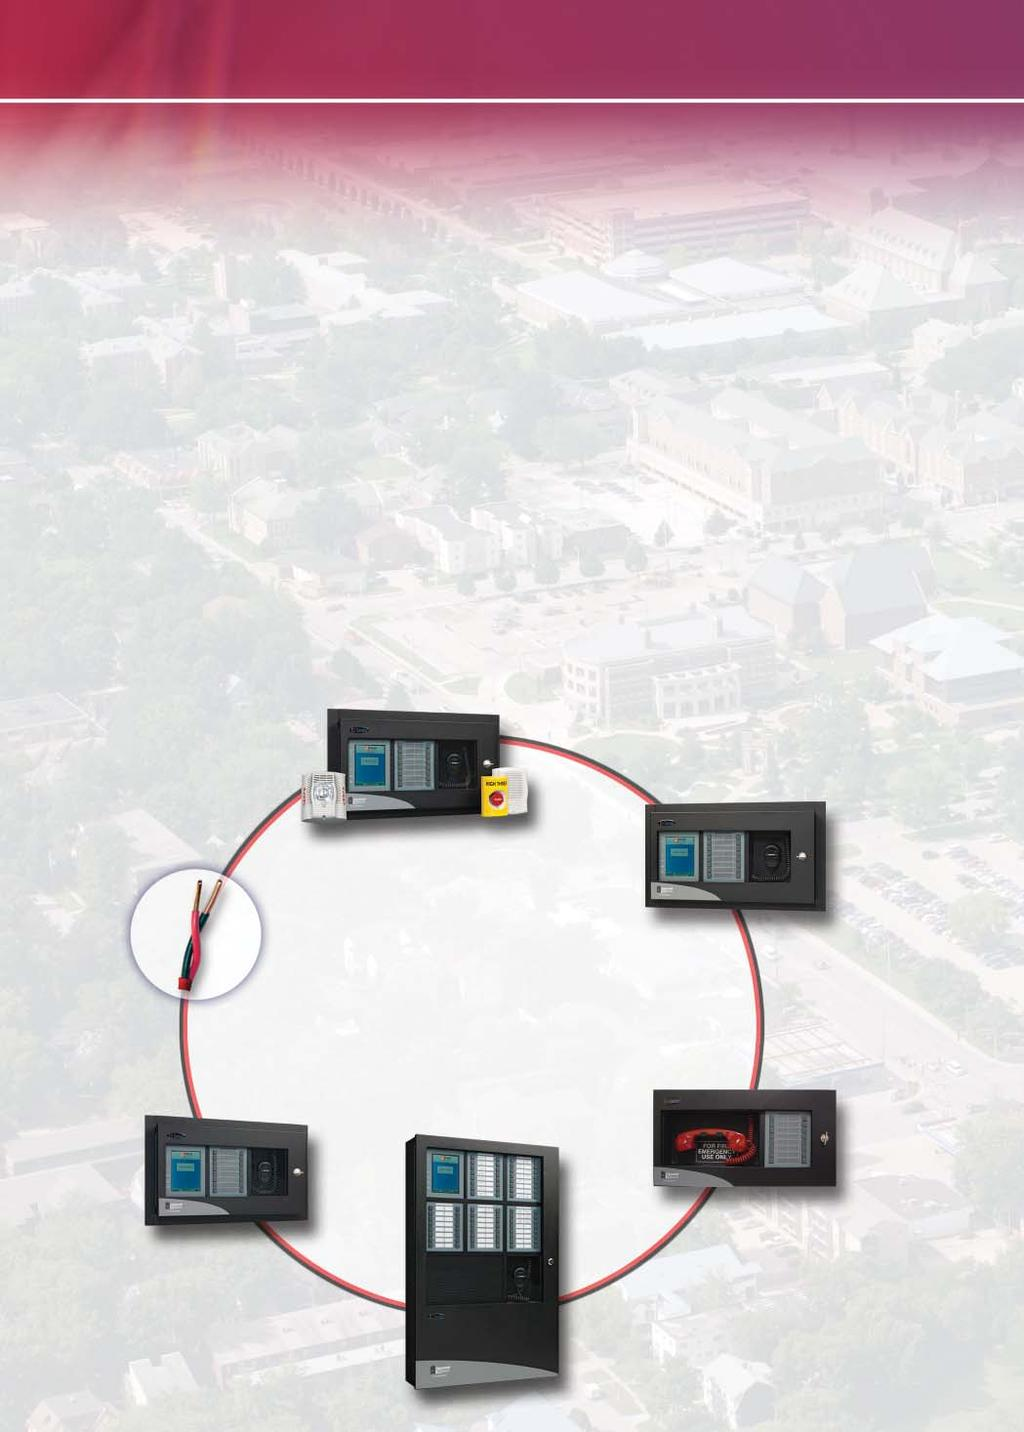 Reliability and Survivability Outperform the Rest The strength of the E3 Series, Expandable Emergency Evacuation system is its ability to communicate real-time information that directs people to take